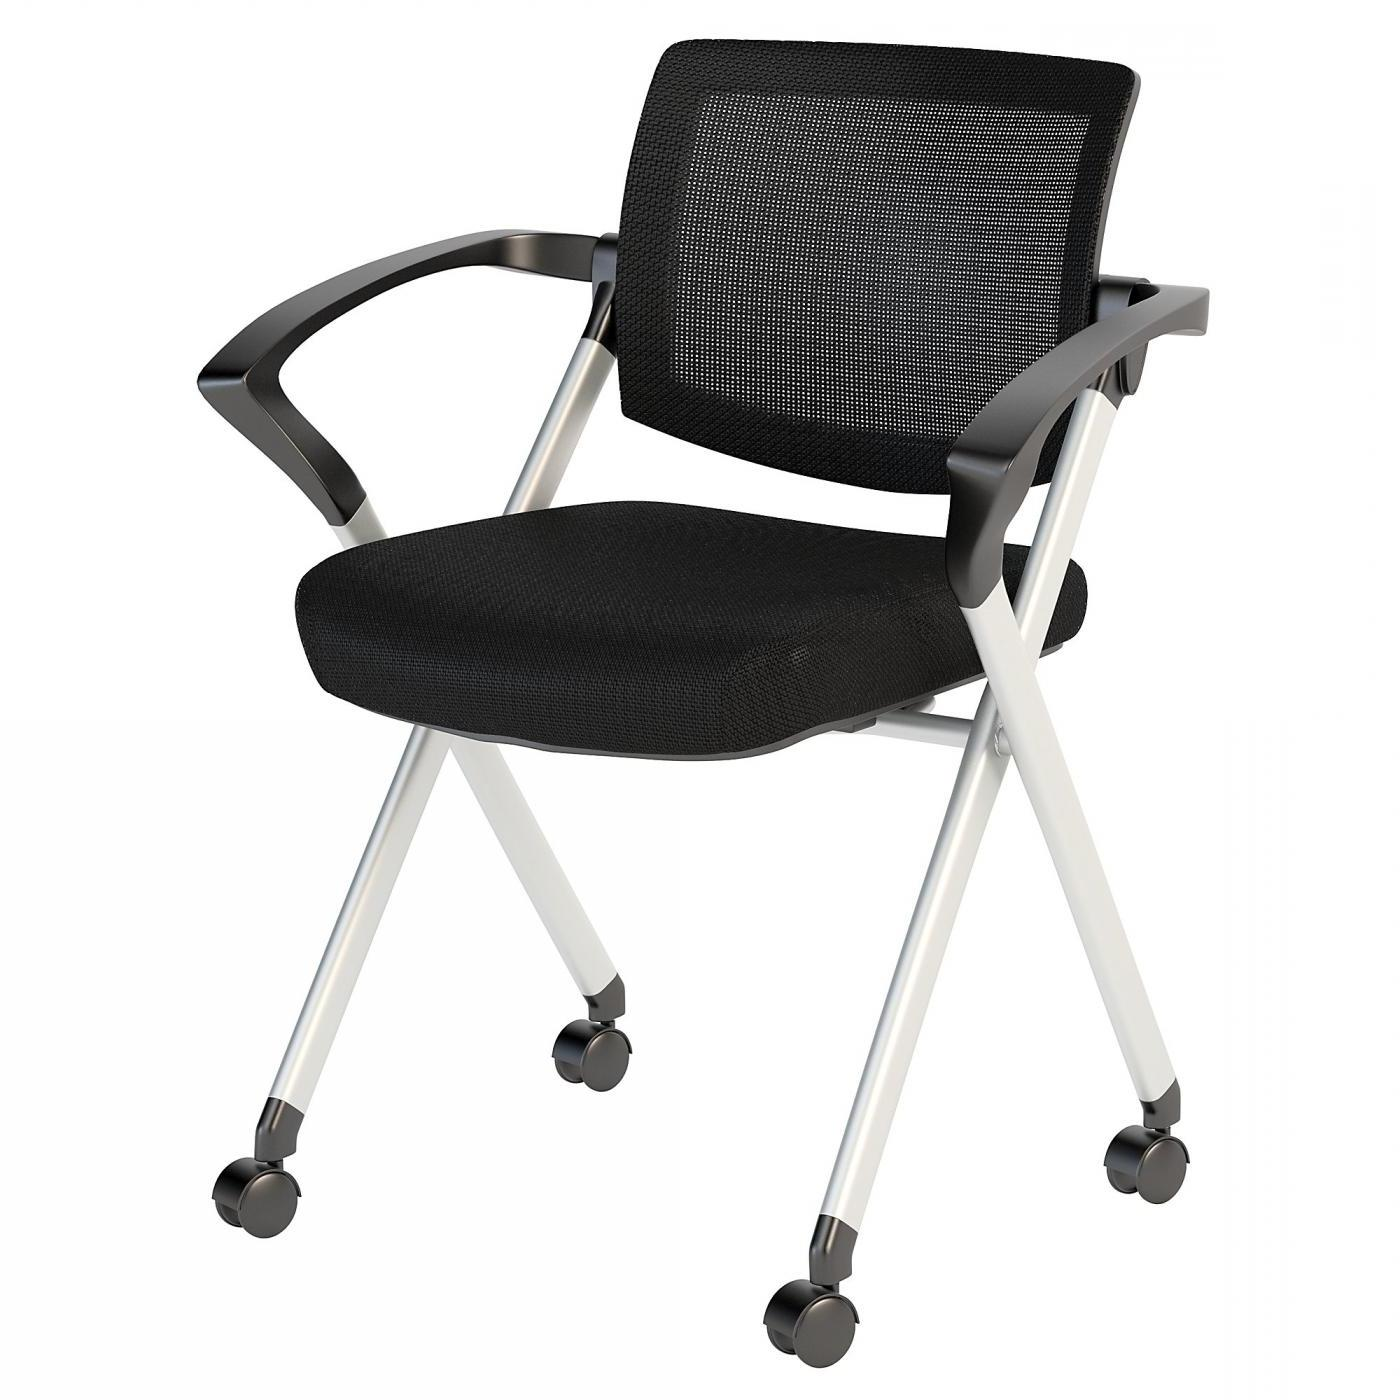 <font color=#c60><b>BUSH BUSINESS FURNITURE CORPORATE MESH BACK FOLDING OFFICE CHAIRS SET OF 2. FREE SHIPPING</font></b> </font></b></font></b>